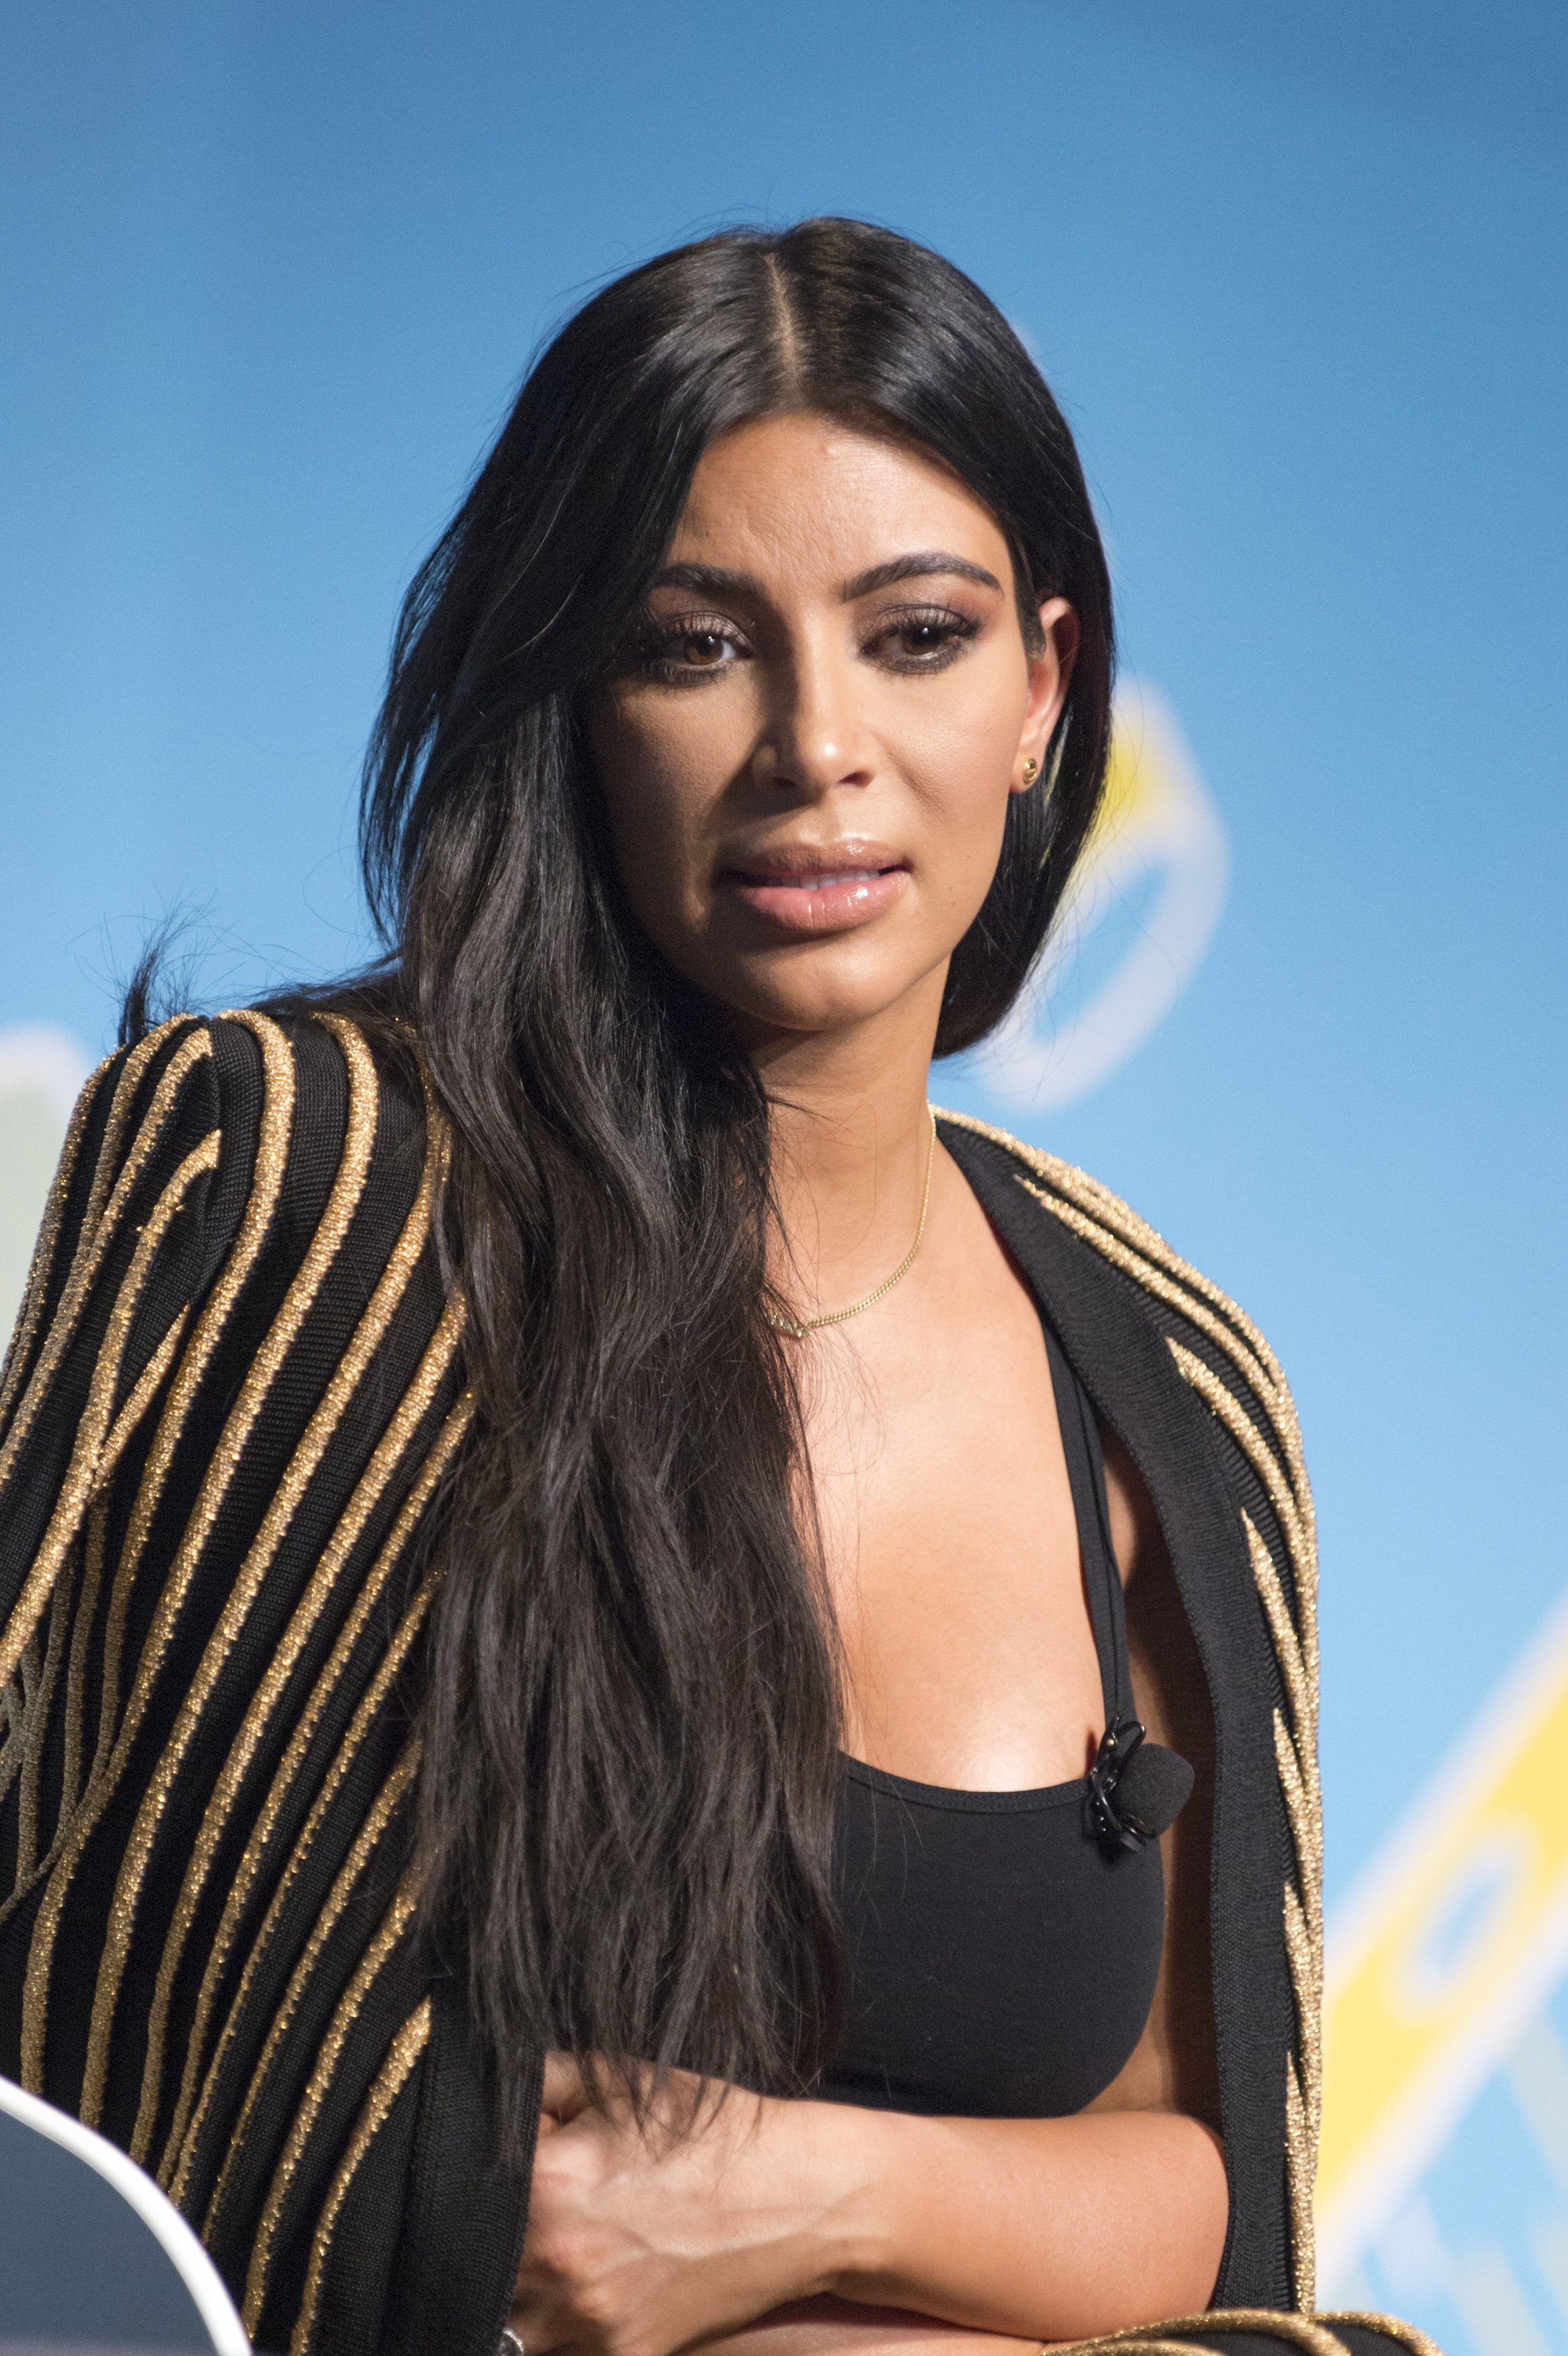 Image Credits: Getty Images / Kim Kardashian, the second eldest sister